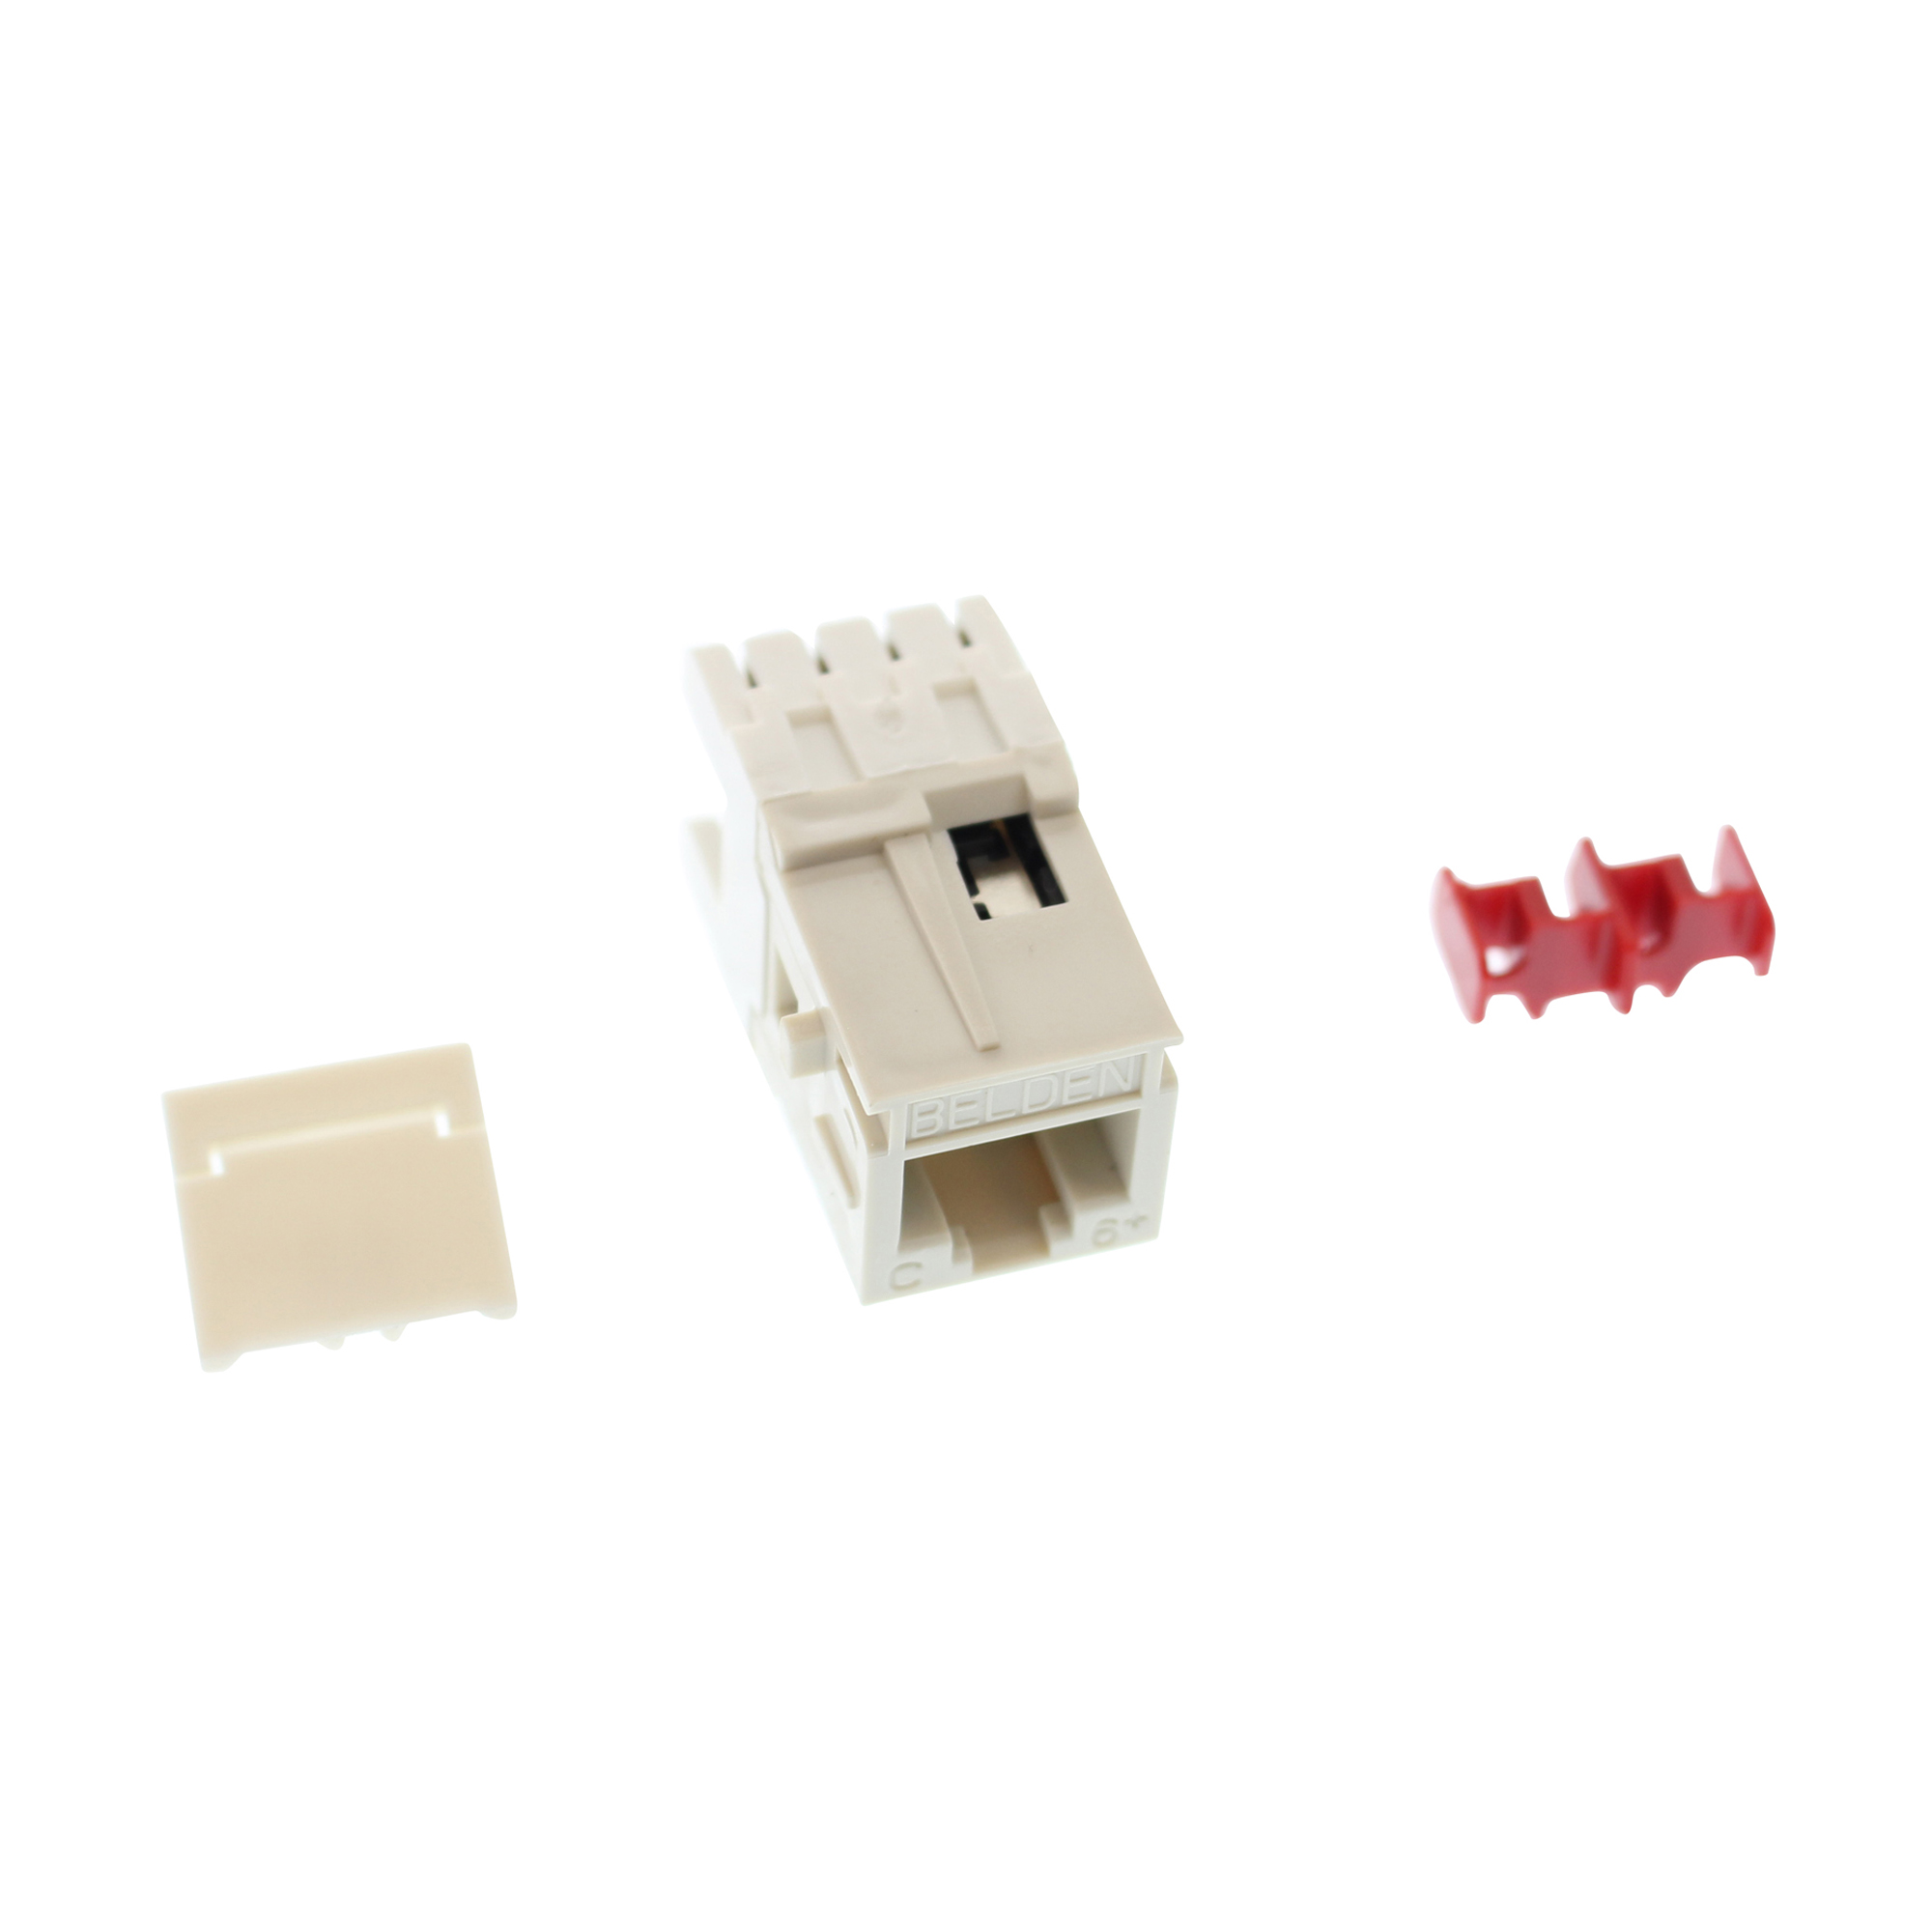 hight resolution of this auction is for 1 belden ax101064 cat6 modular jack category 6 rj45 mdvo style